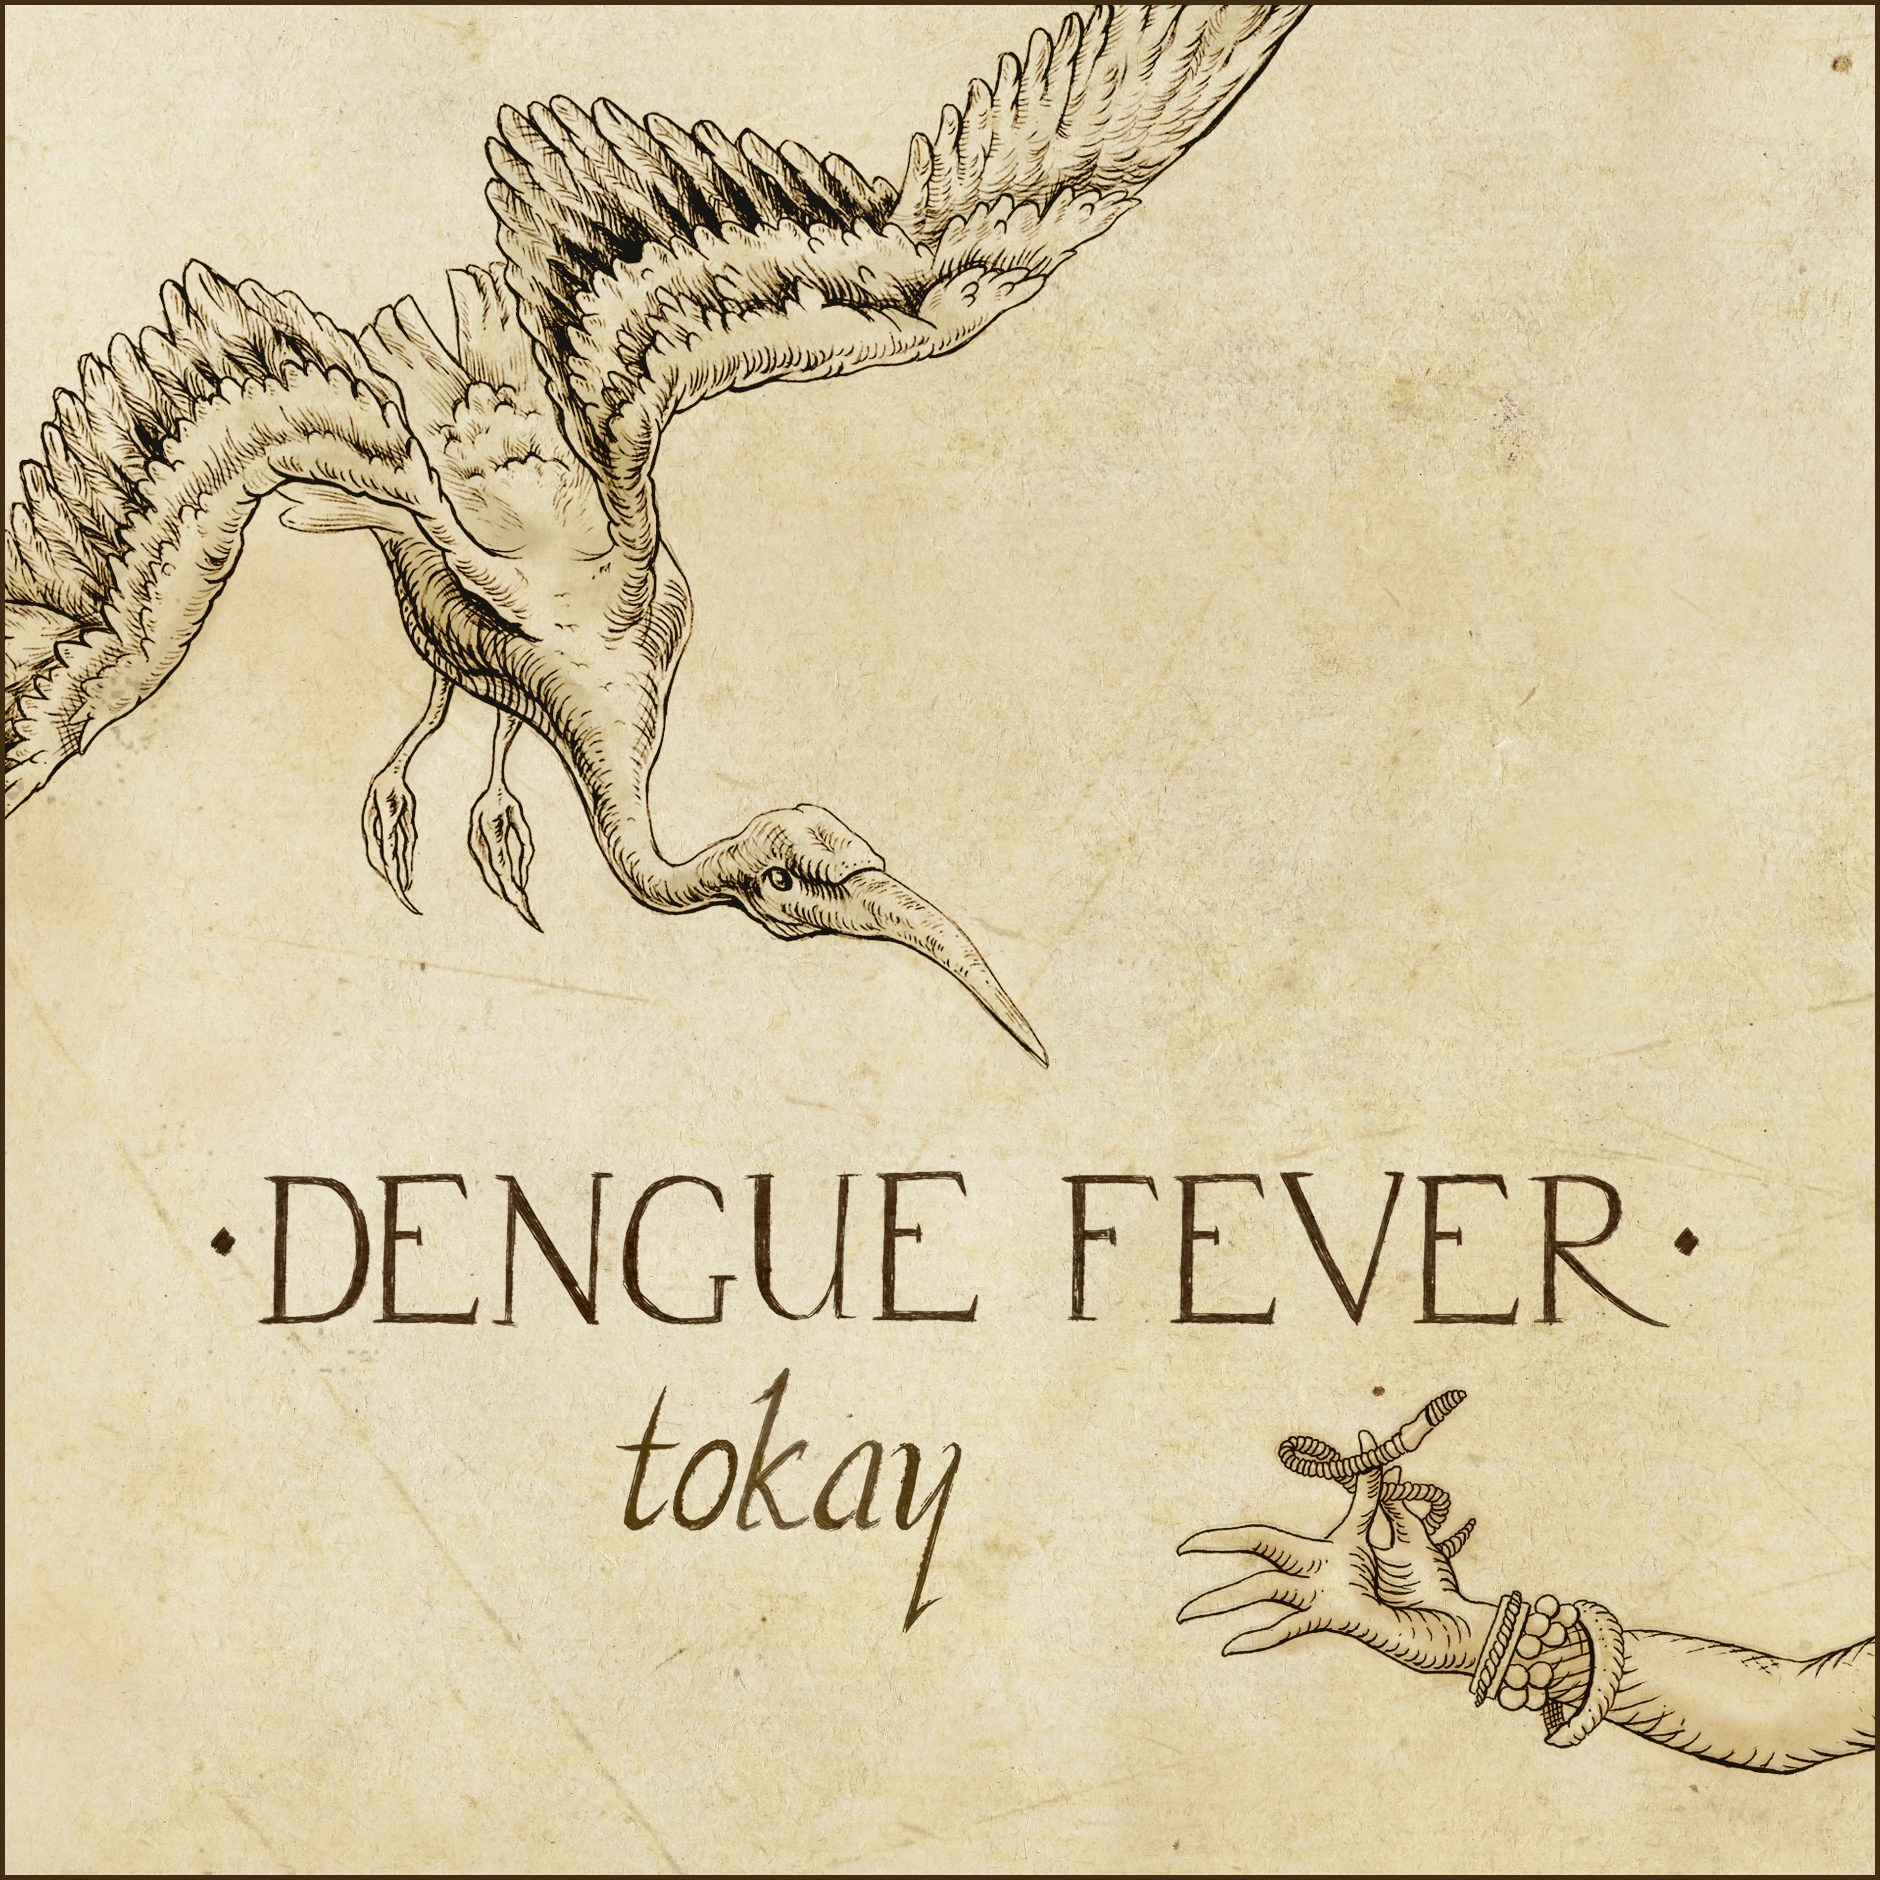 New Dengue Fever Single + Video Confirmed in Support of 6 Week International Tour Starting in September!